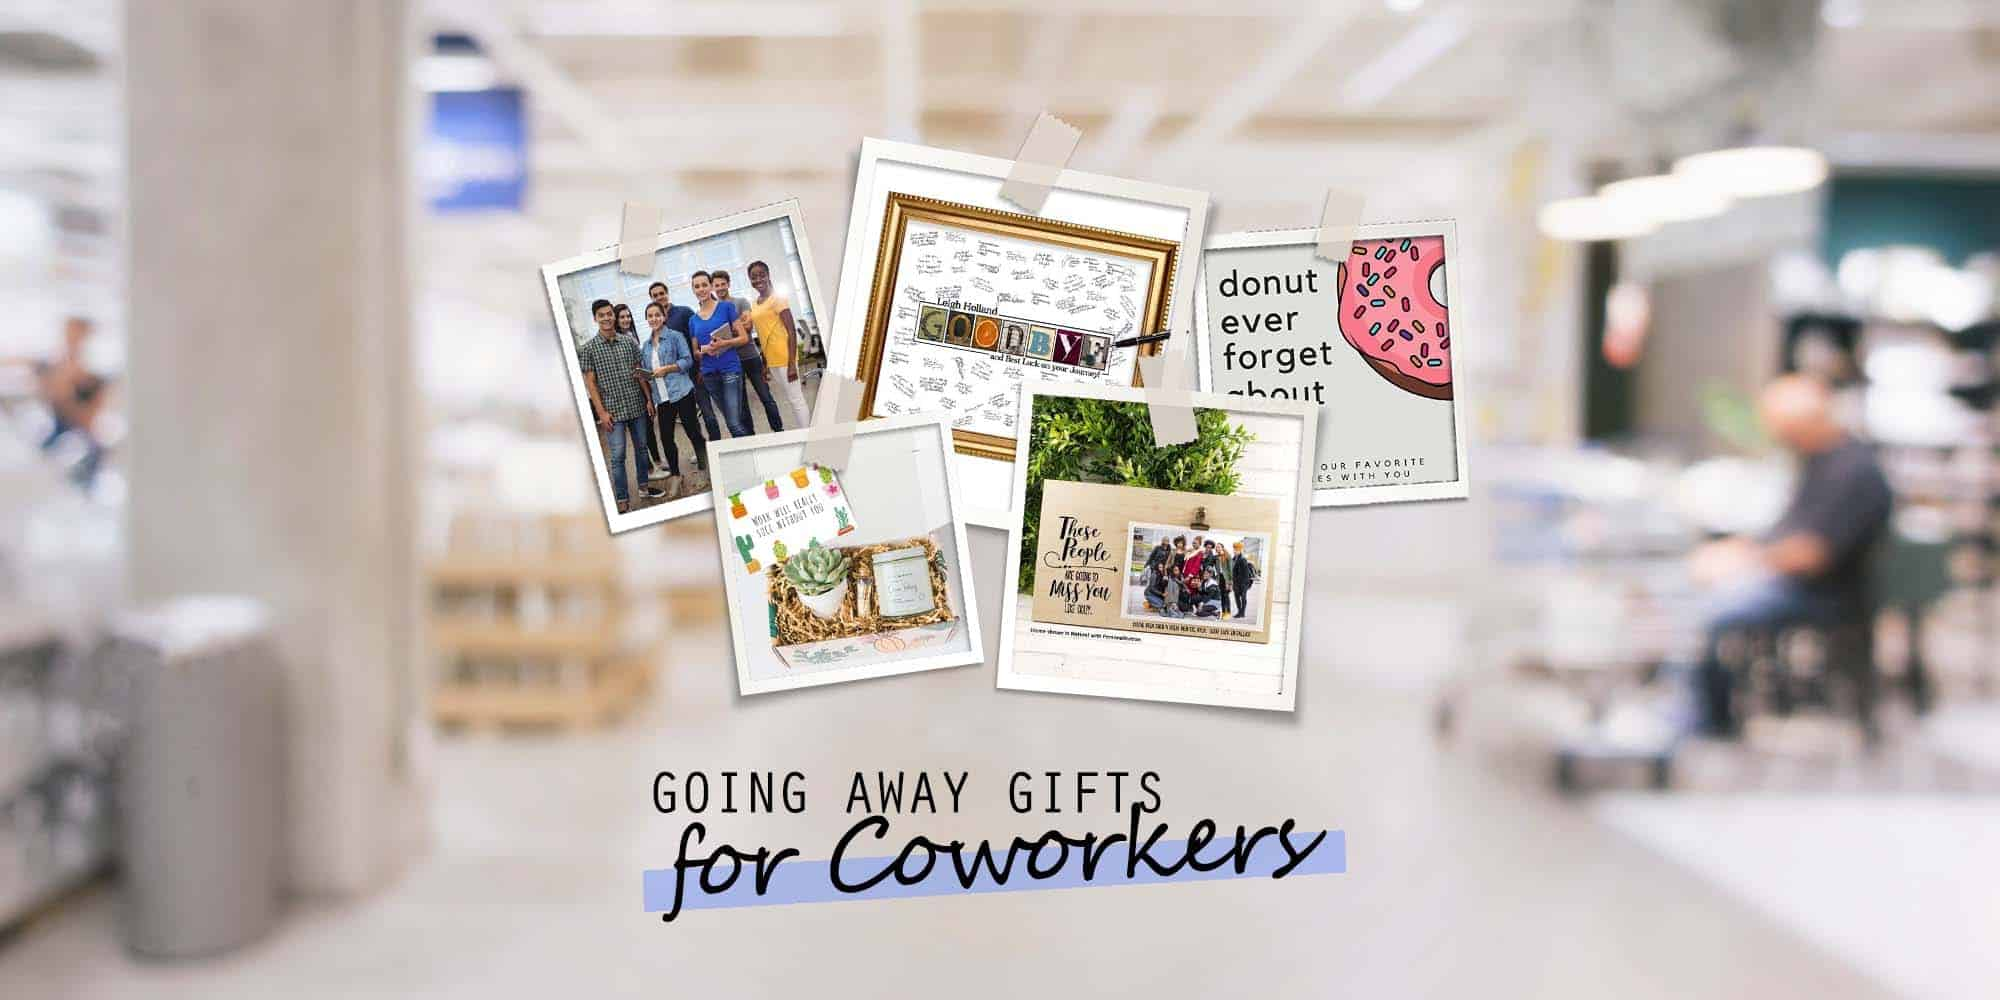 25 Unforgettable Going Away Gifts for Coworkers (2021 Gift Guide)